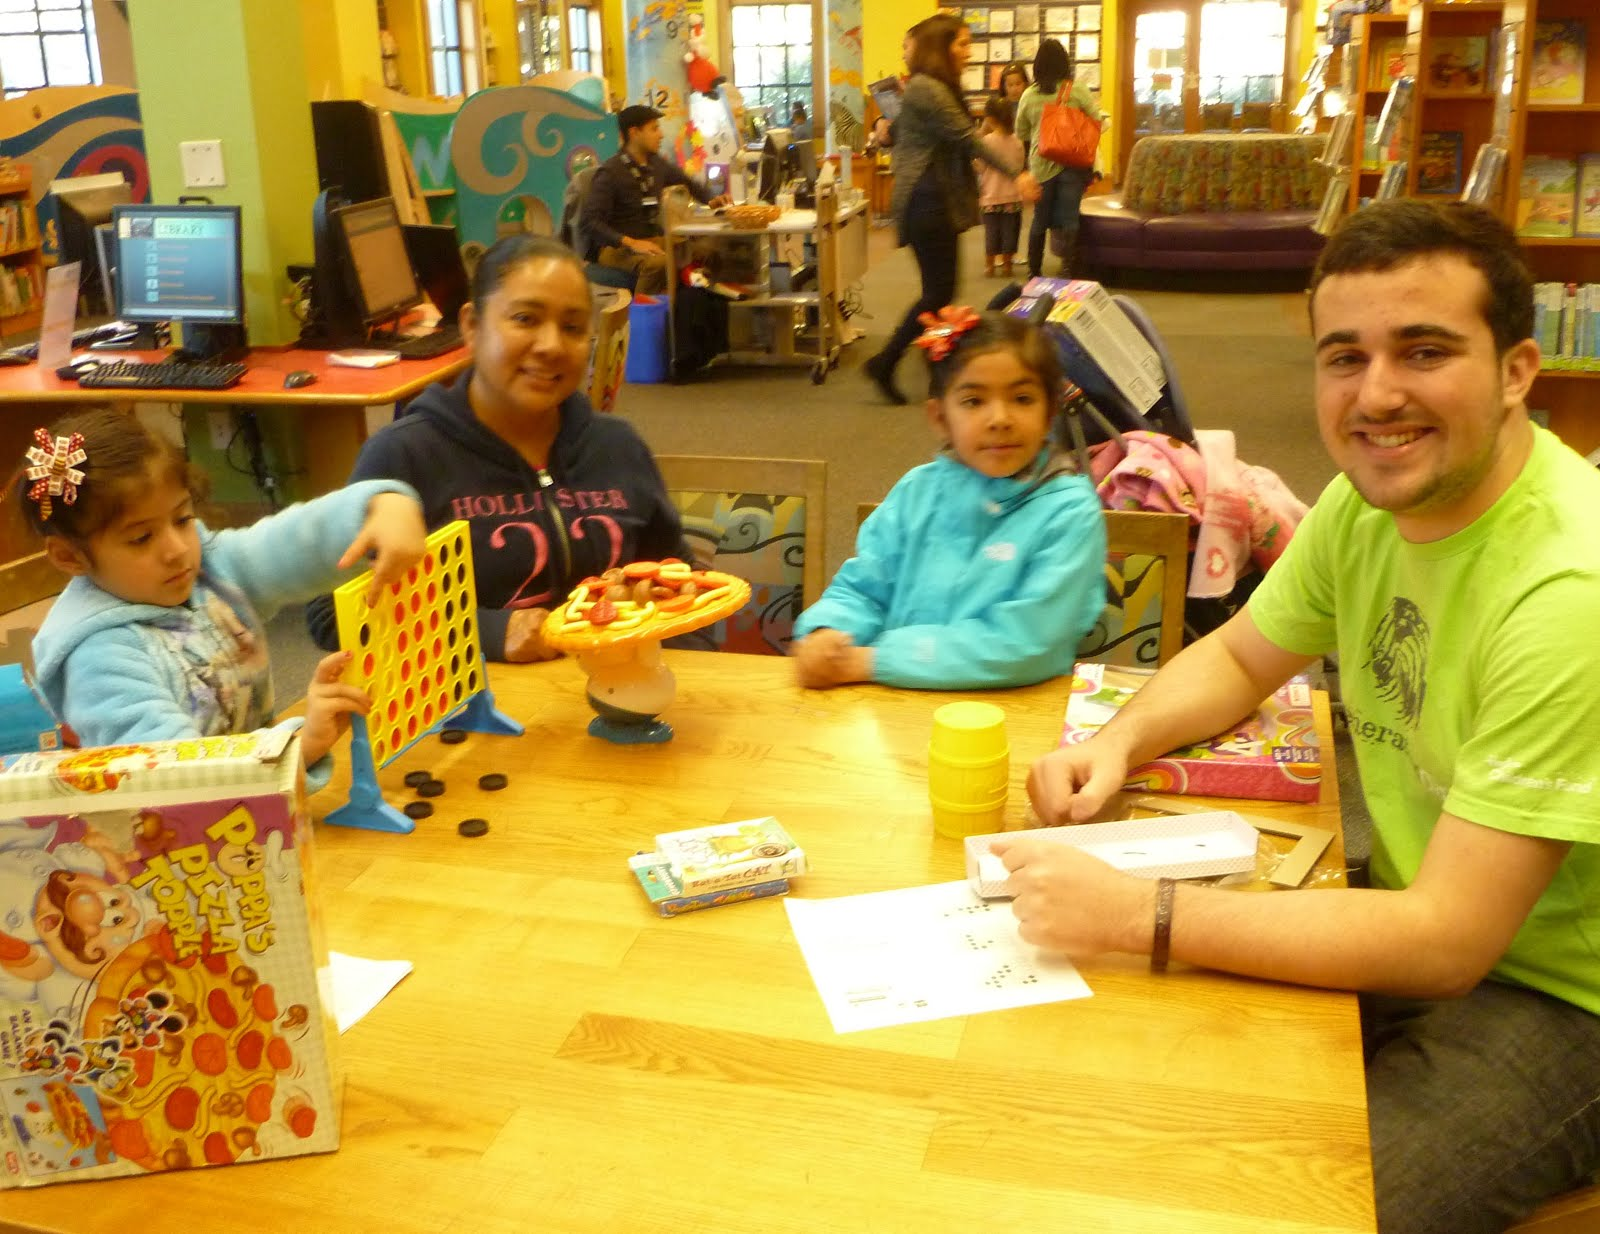 Board Game Day at the Library - Dec. 23, 2015